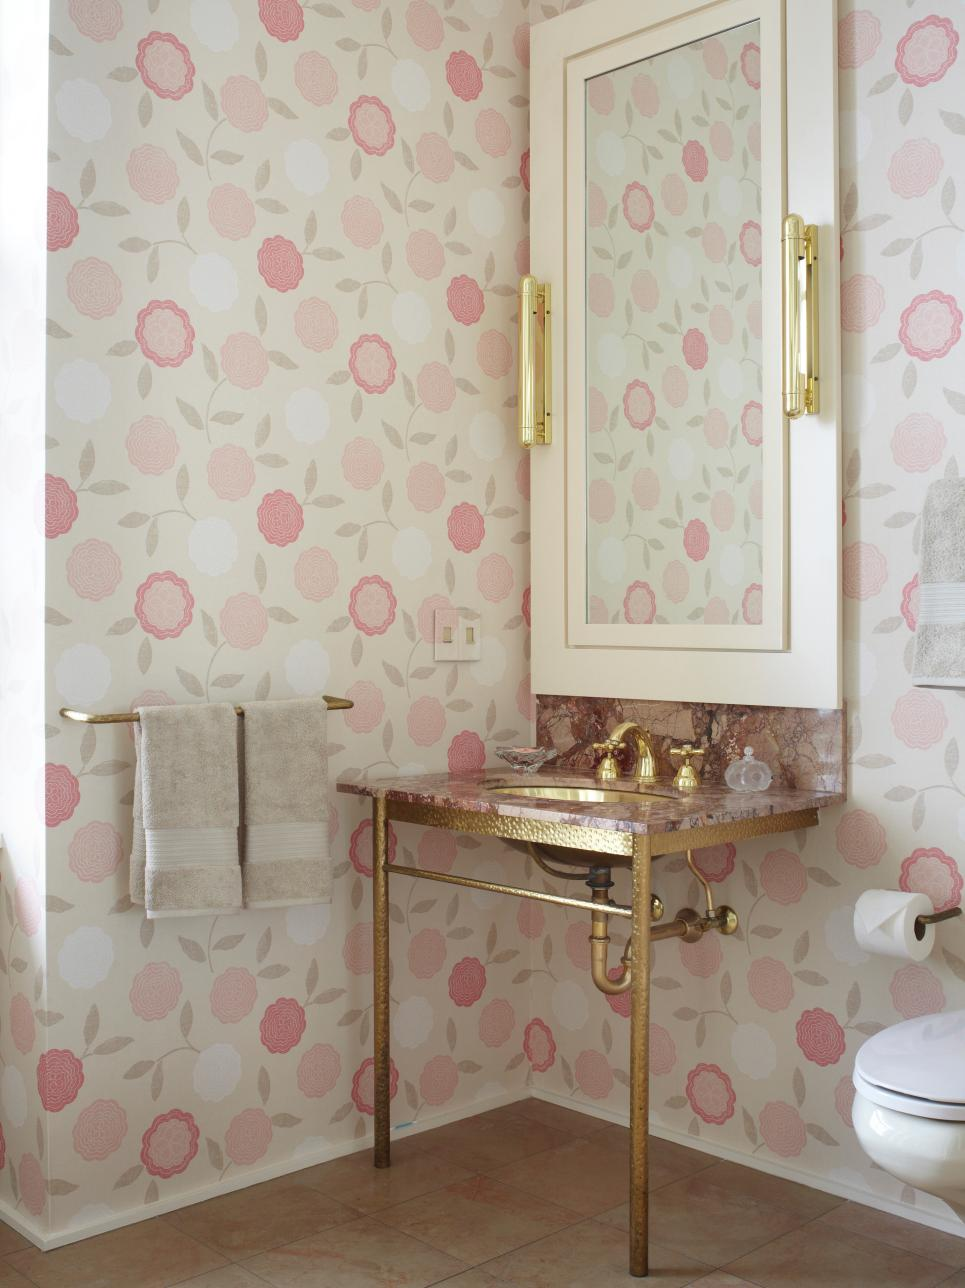 18 bathrooms for shabby chic design inspiration for Bathroom wallpaper